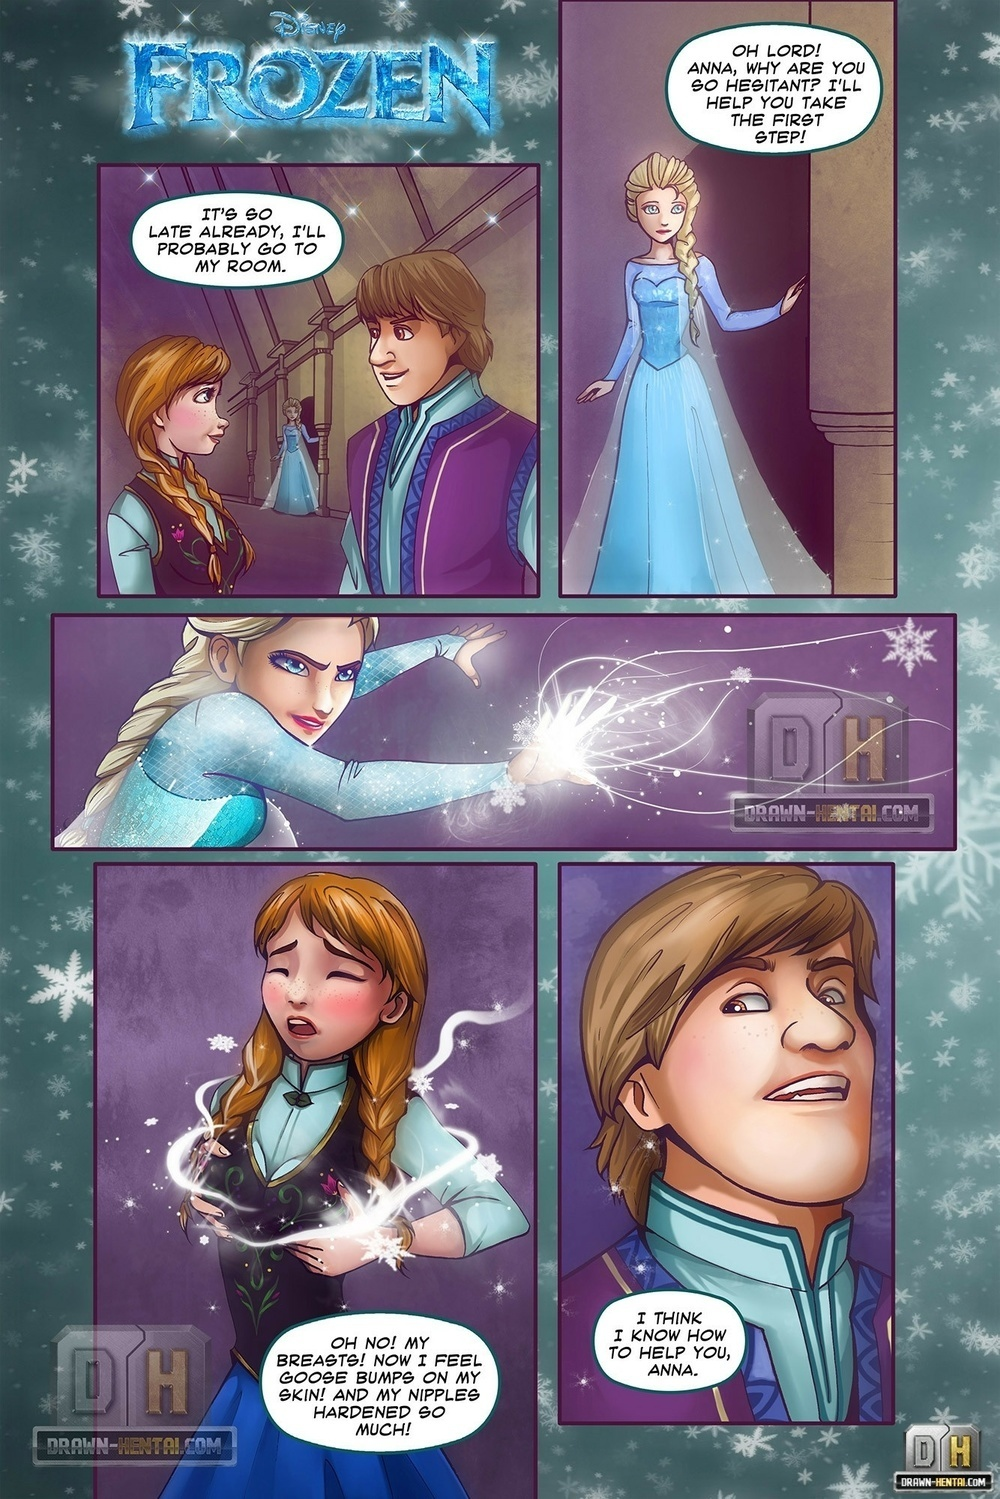 DRAWN-HENTAI – DISNEY, FROZEN